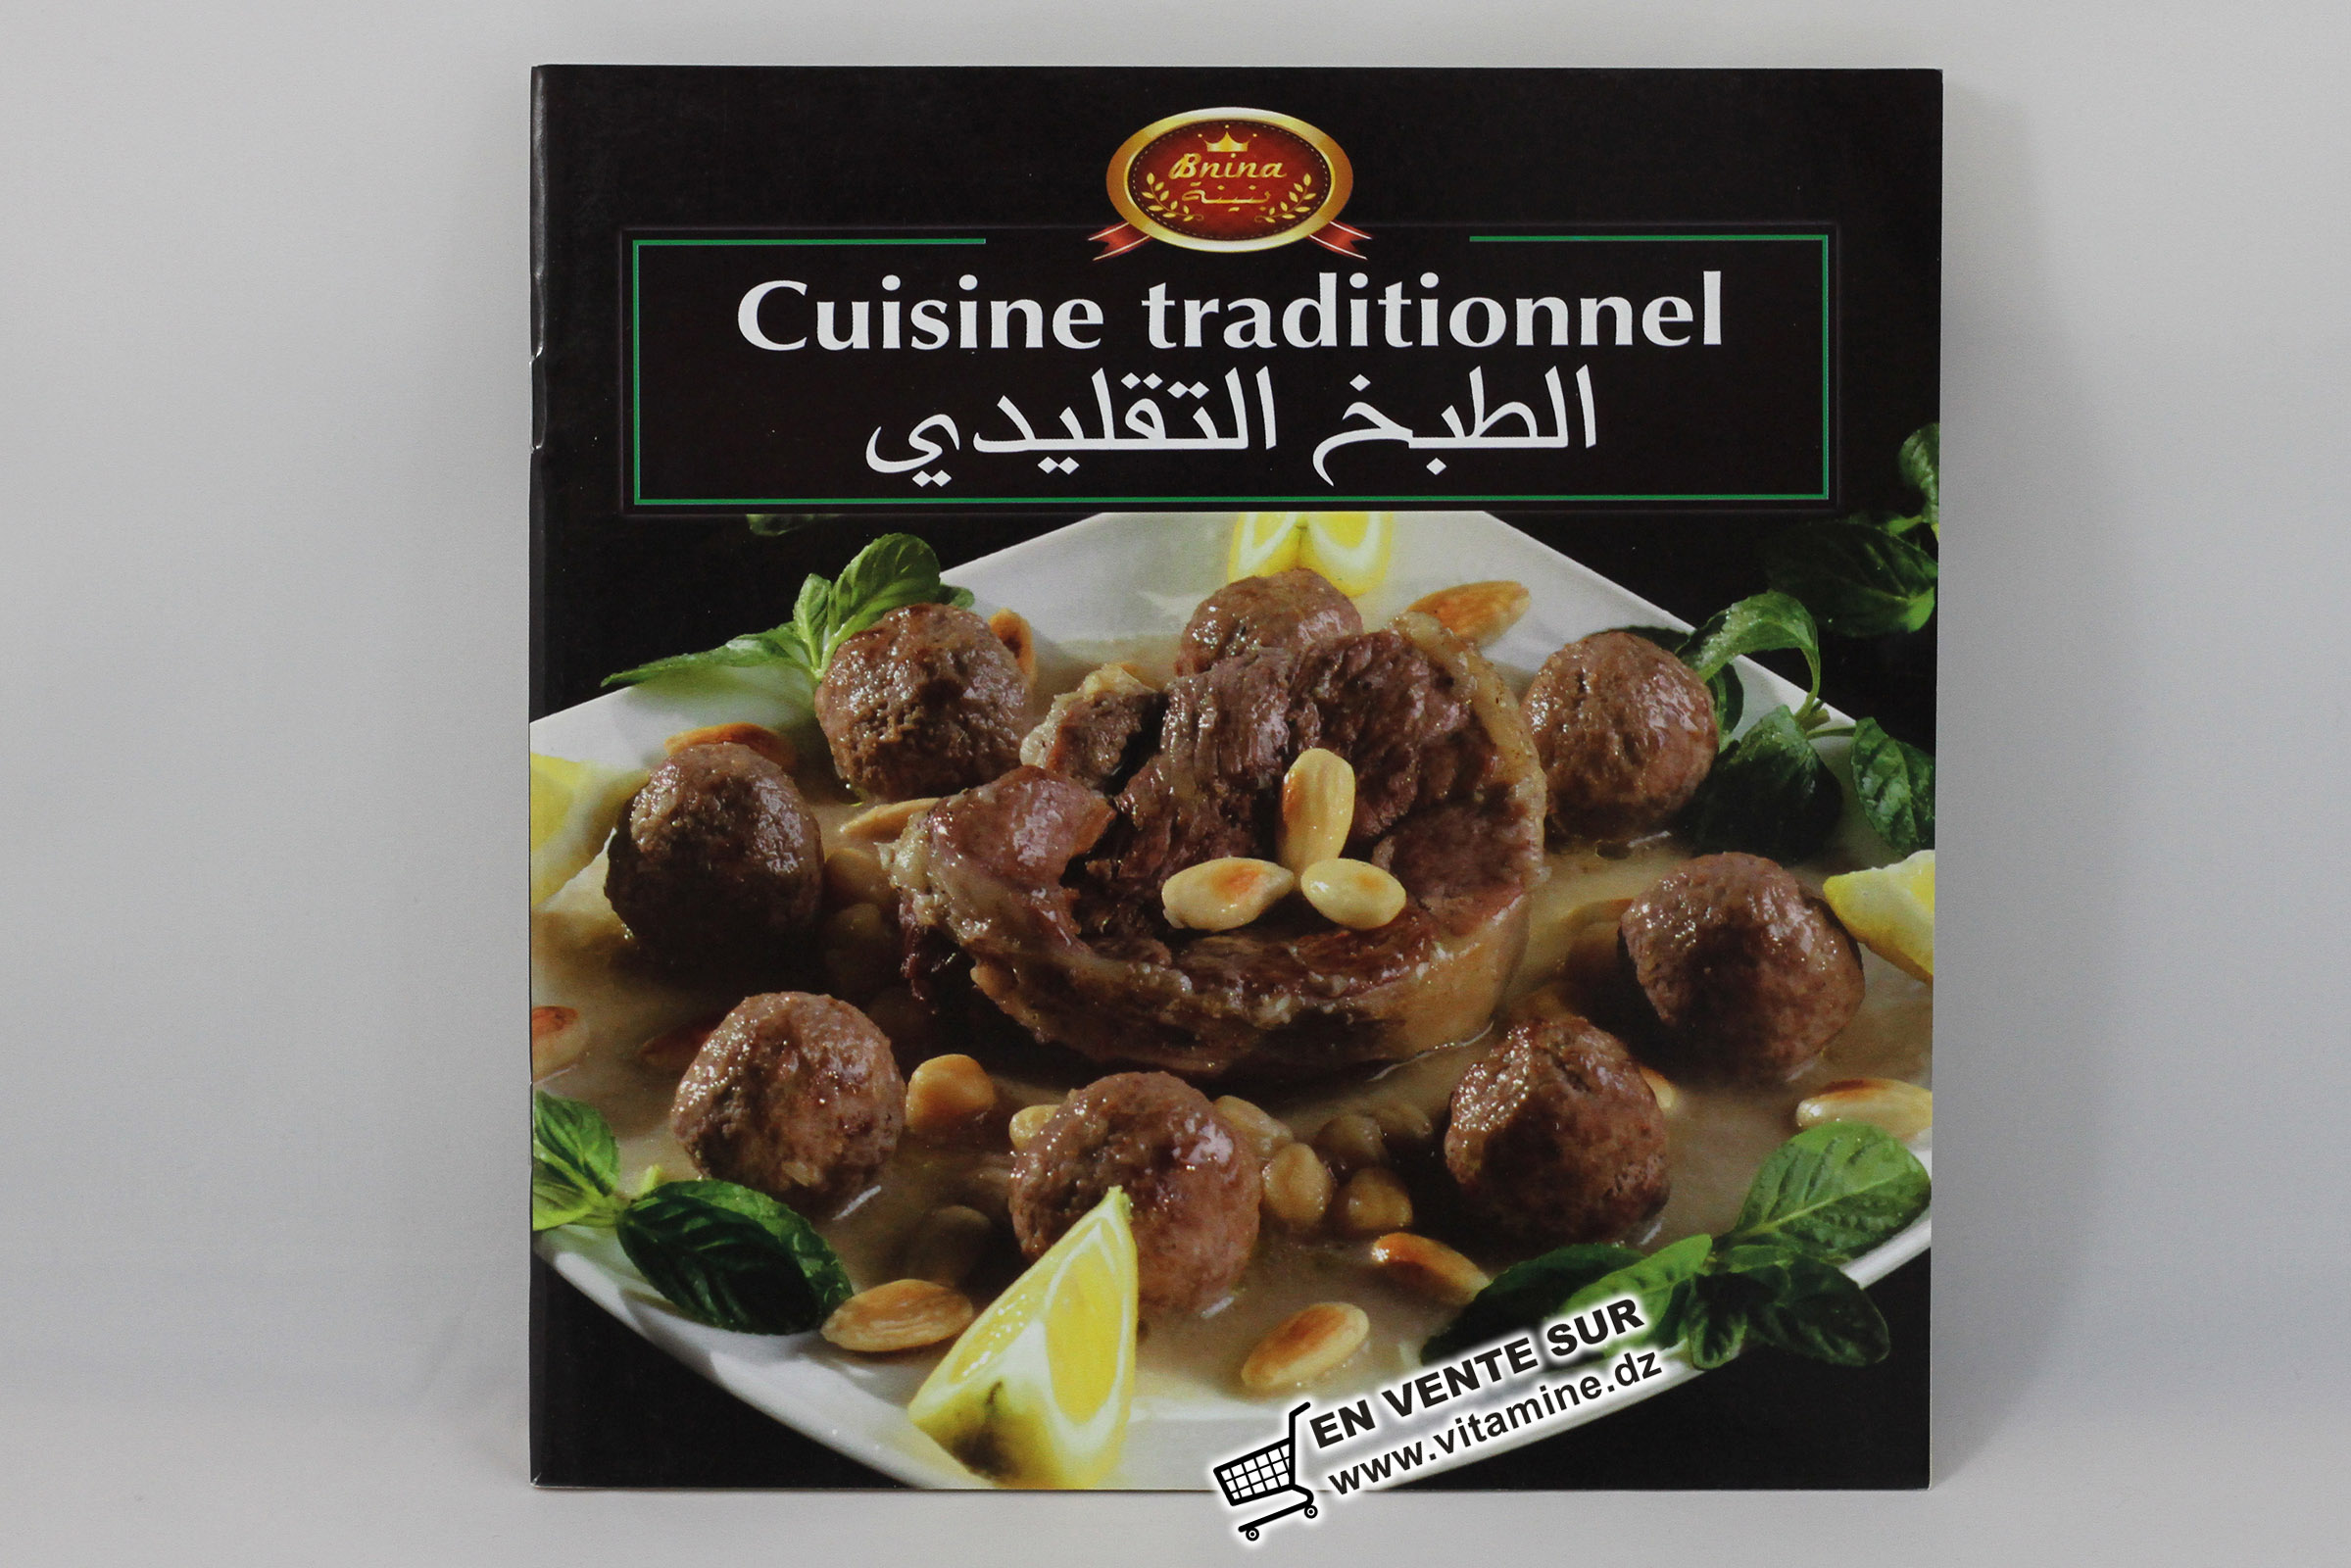 Bnina - Cuisine traditionnelle